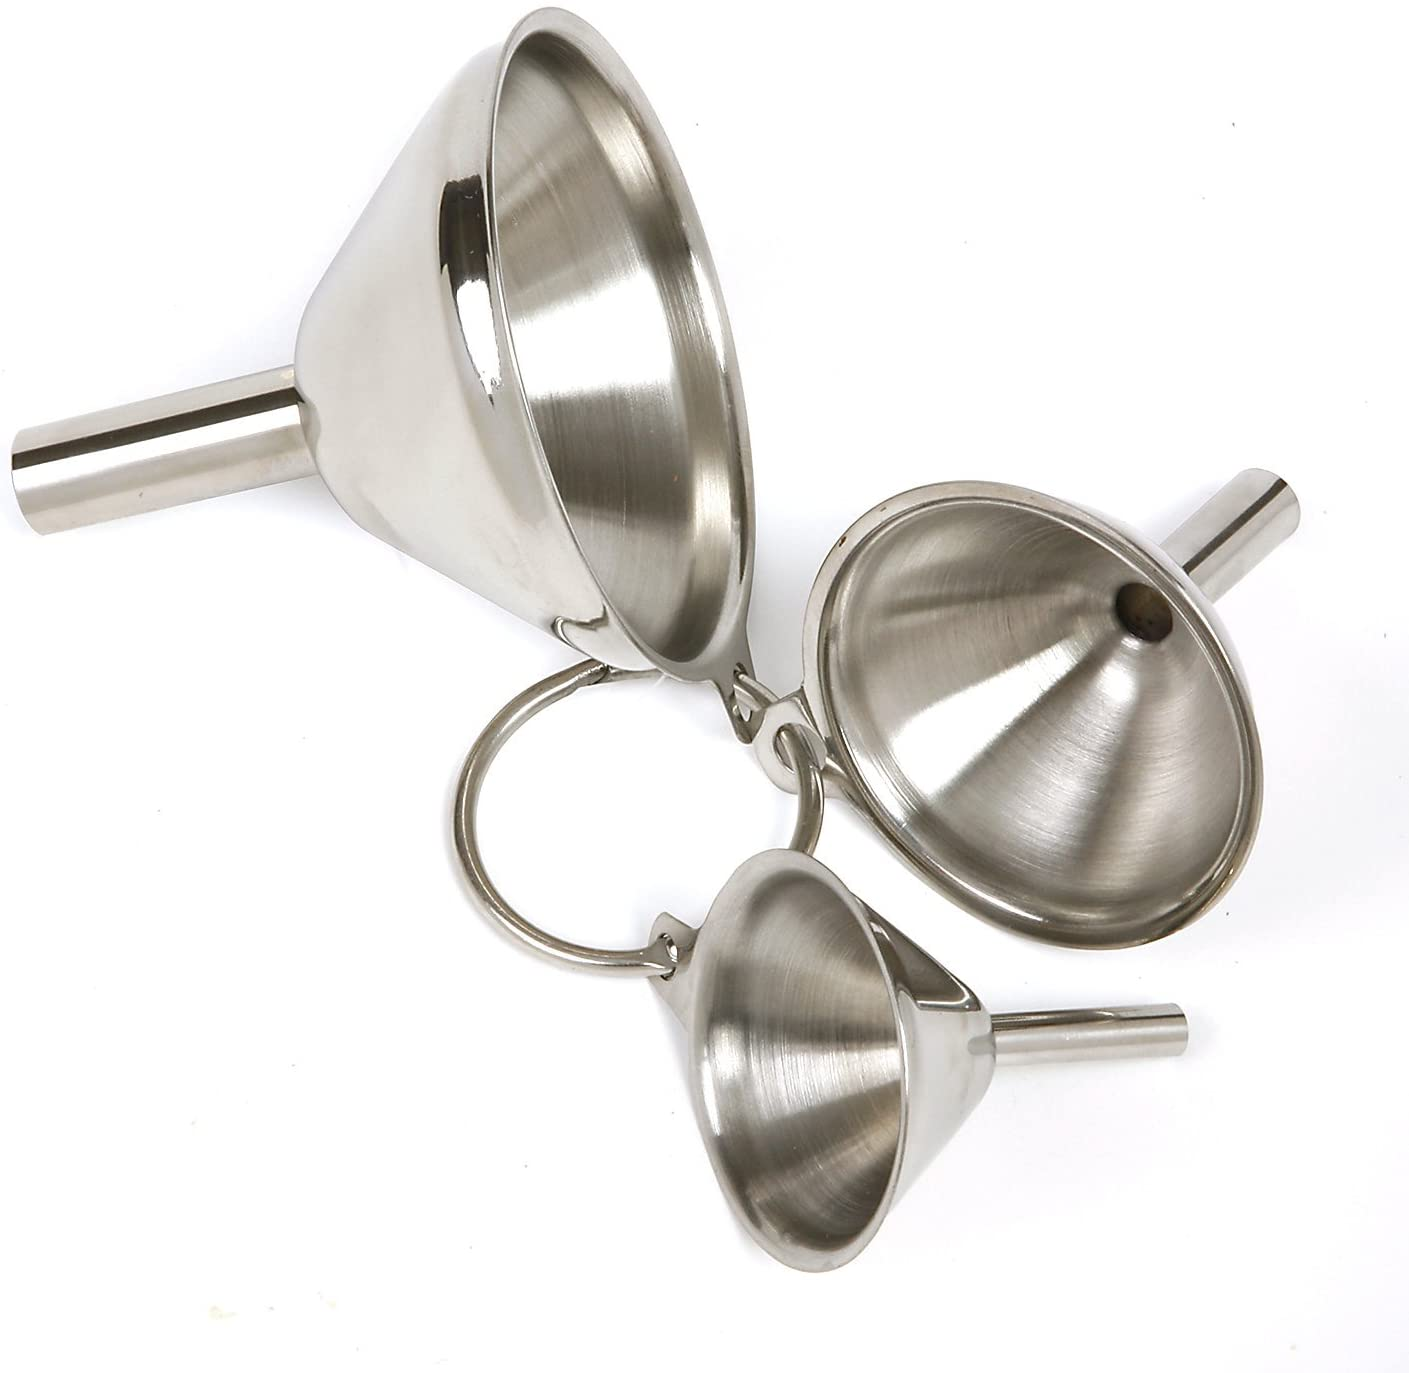 Norpro 18//10 Stainless Steel 3Pc Funnel Set Canning Preserving /& Small Bottles